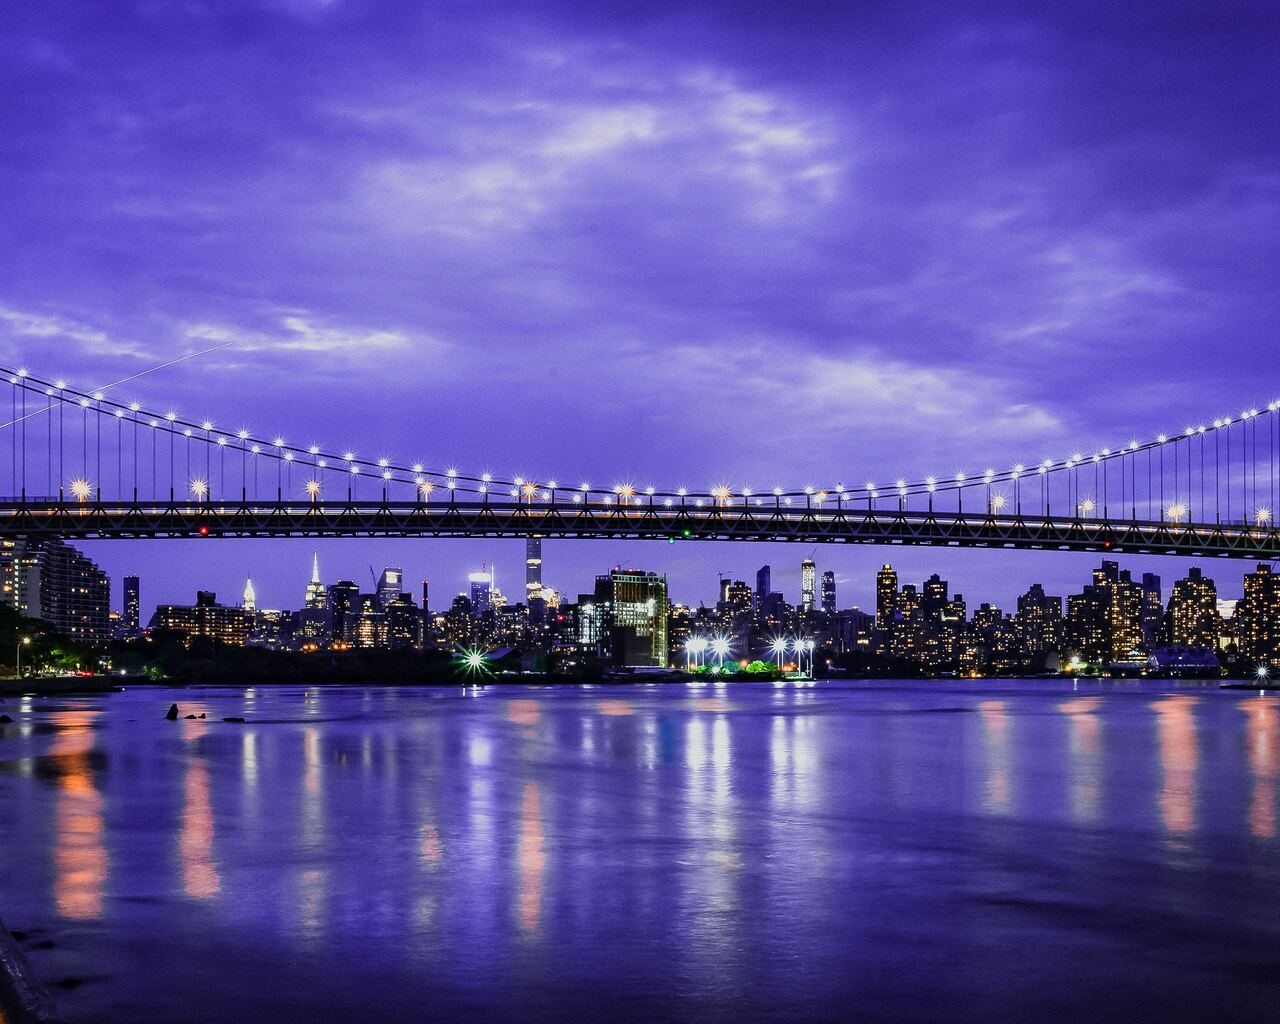 skyline-triboro-nyc-bridge-n3.jpg